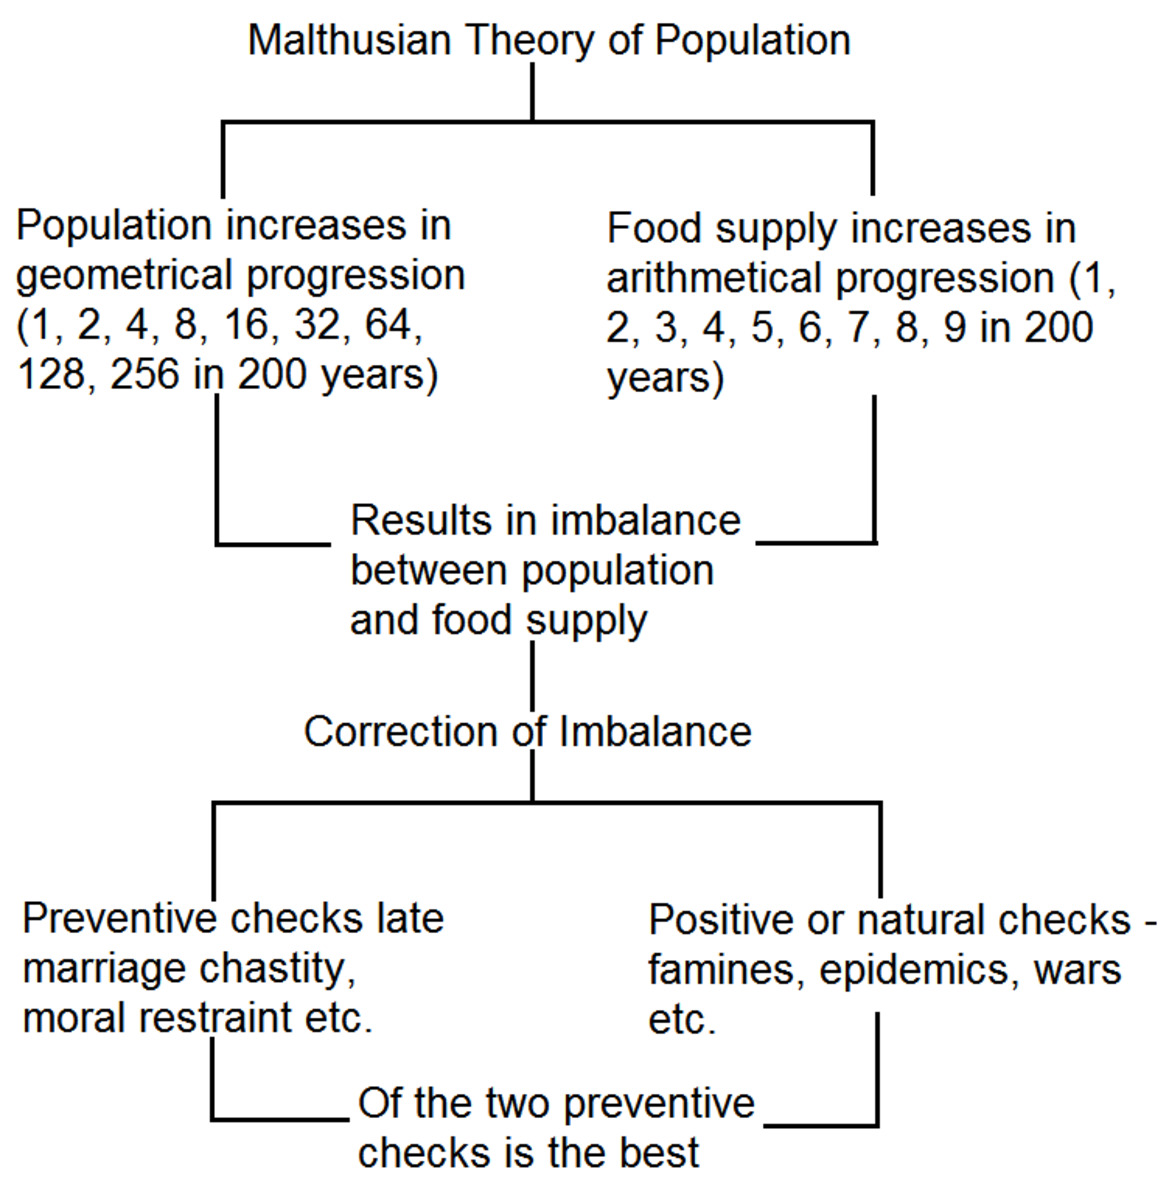 malthusian theory of population essay malthus overpopulation extremely important thomas malthus st to an essay on the principle of population as